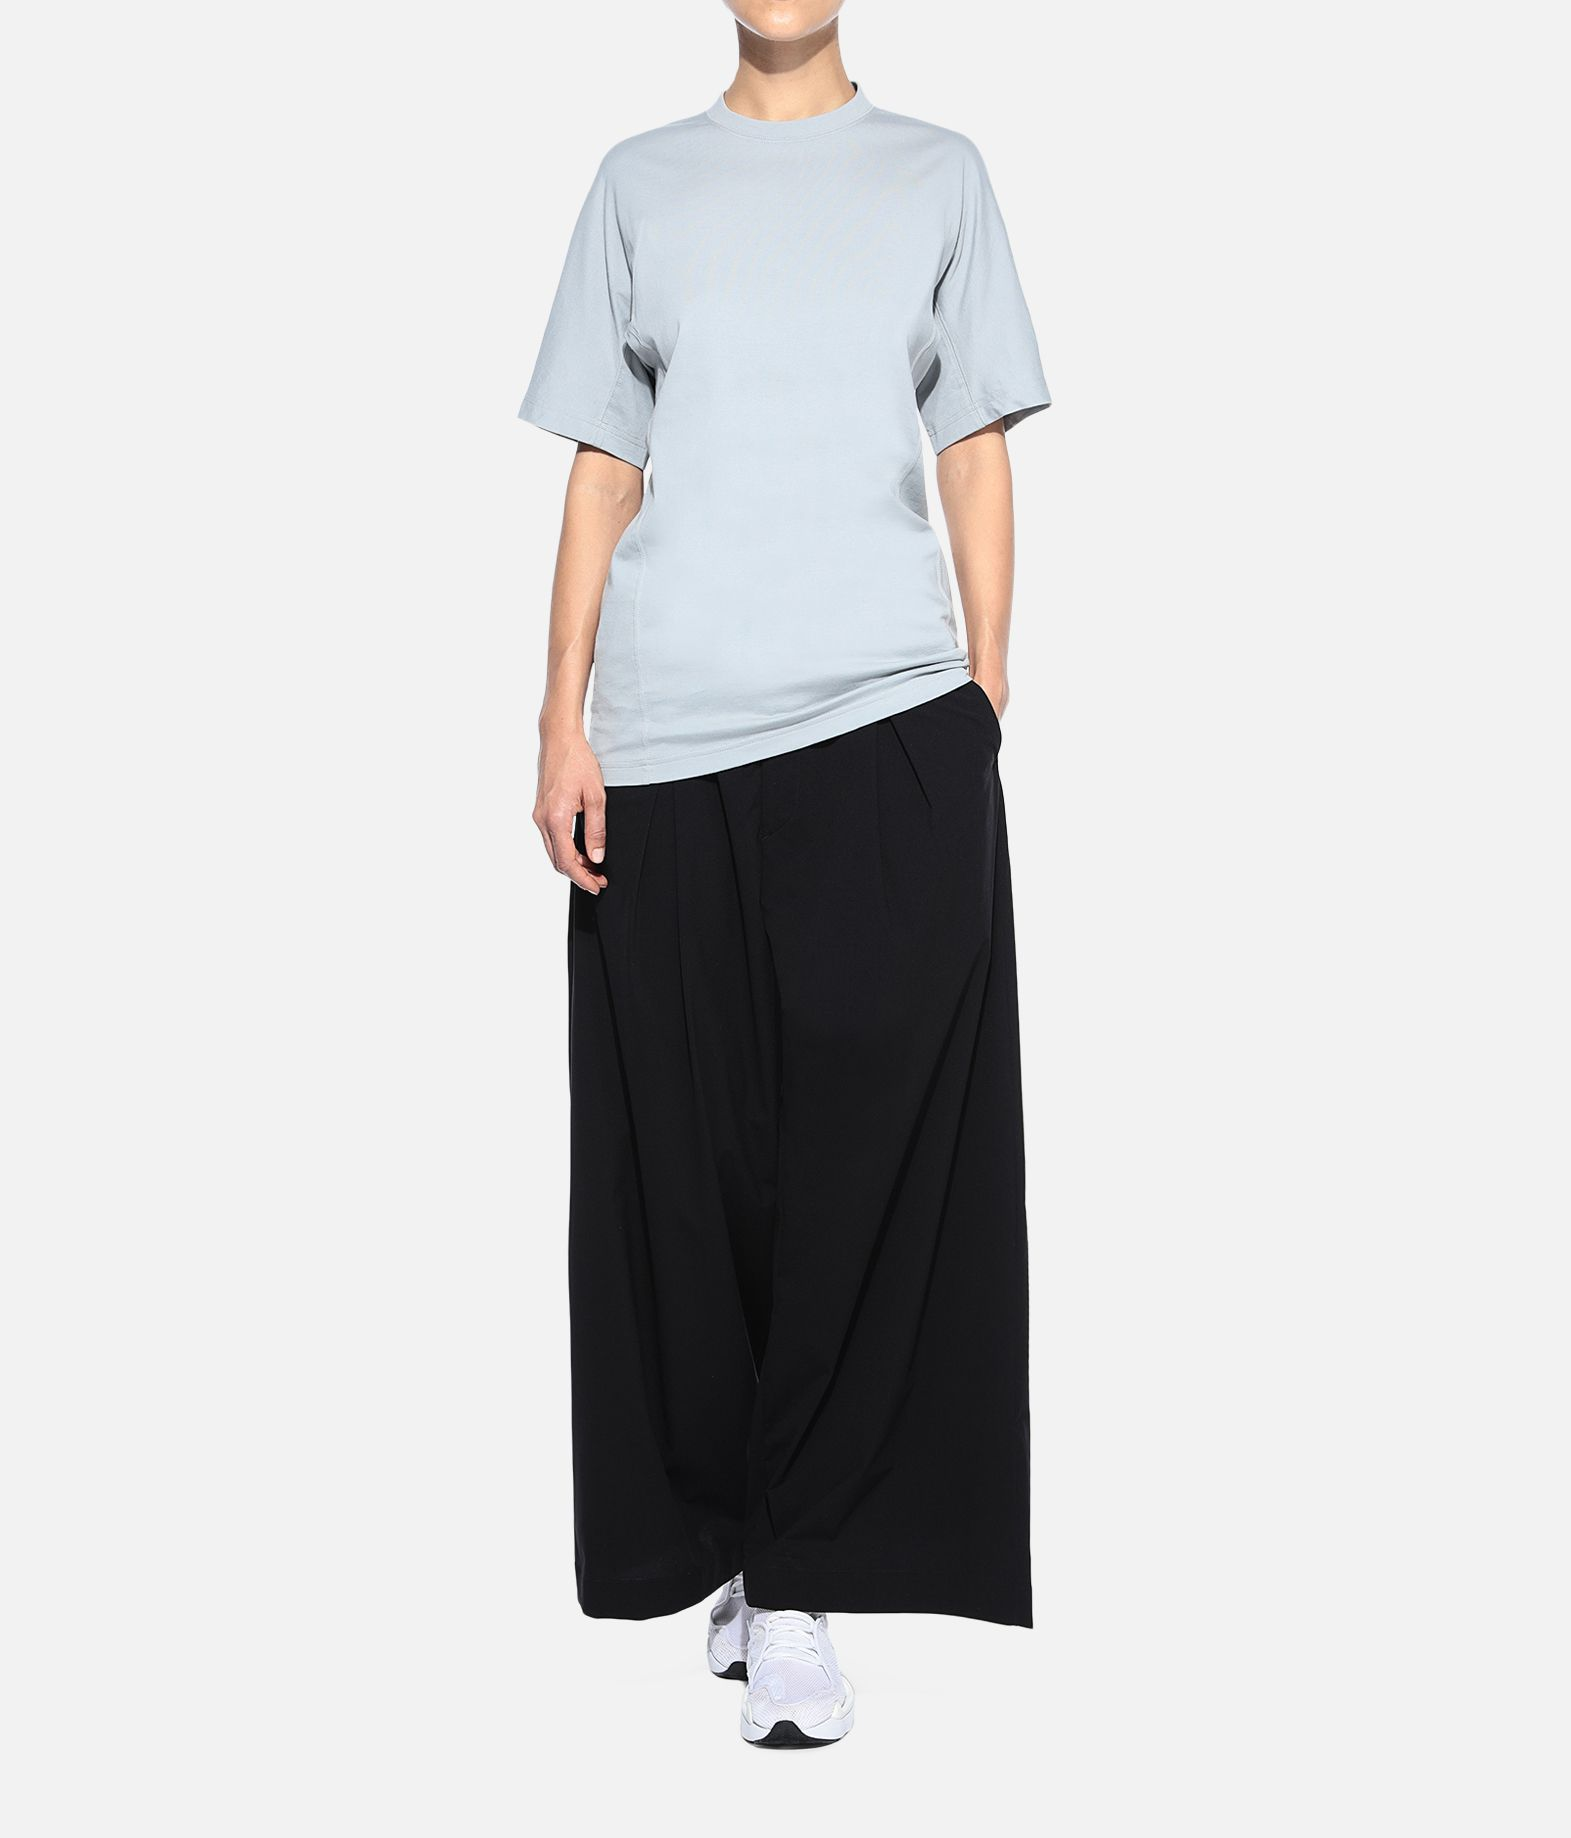 Y-3 Y-3 Classic Tee Short sleeve t-shirt Woman a